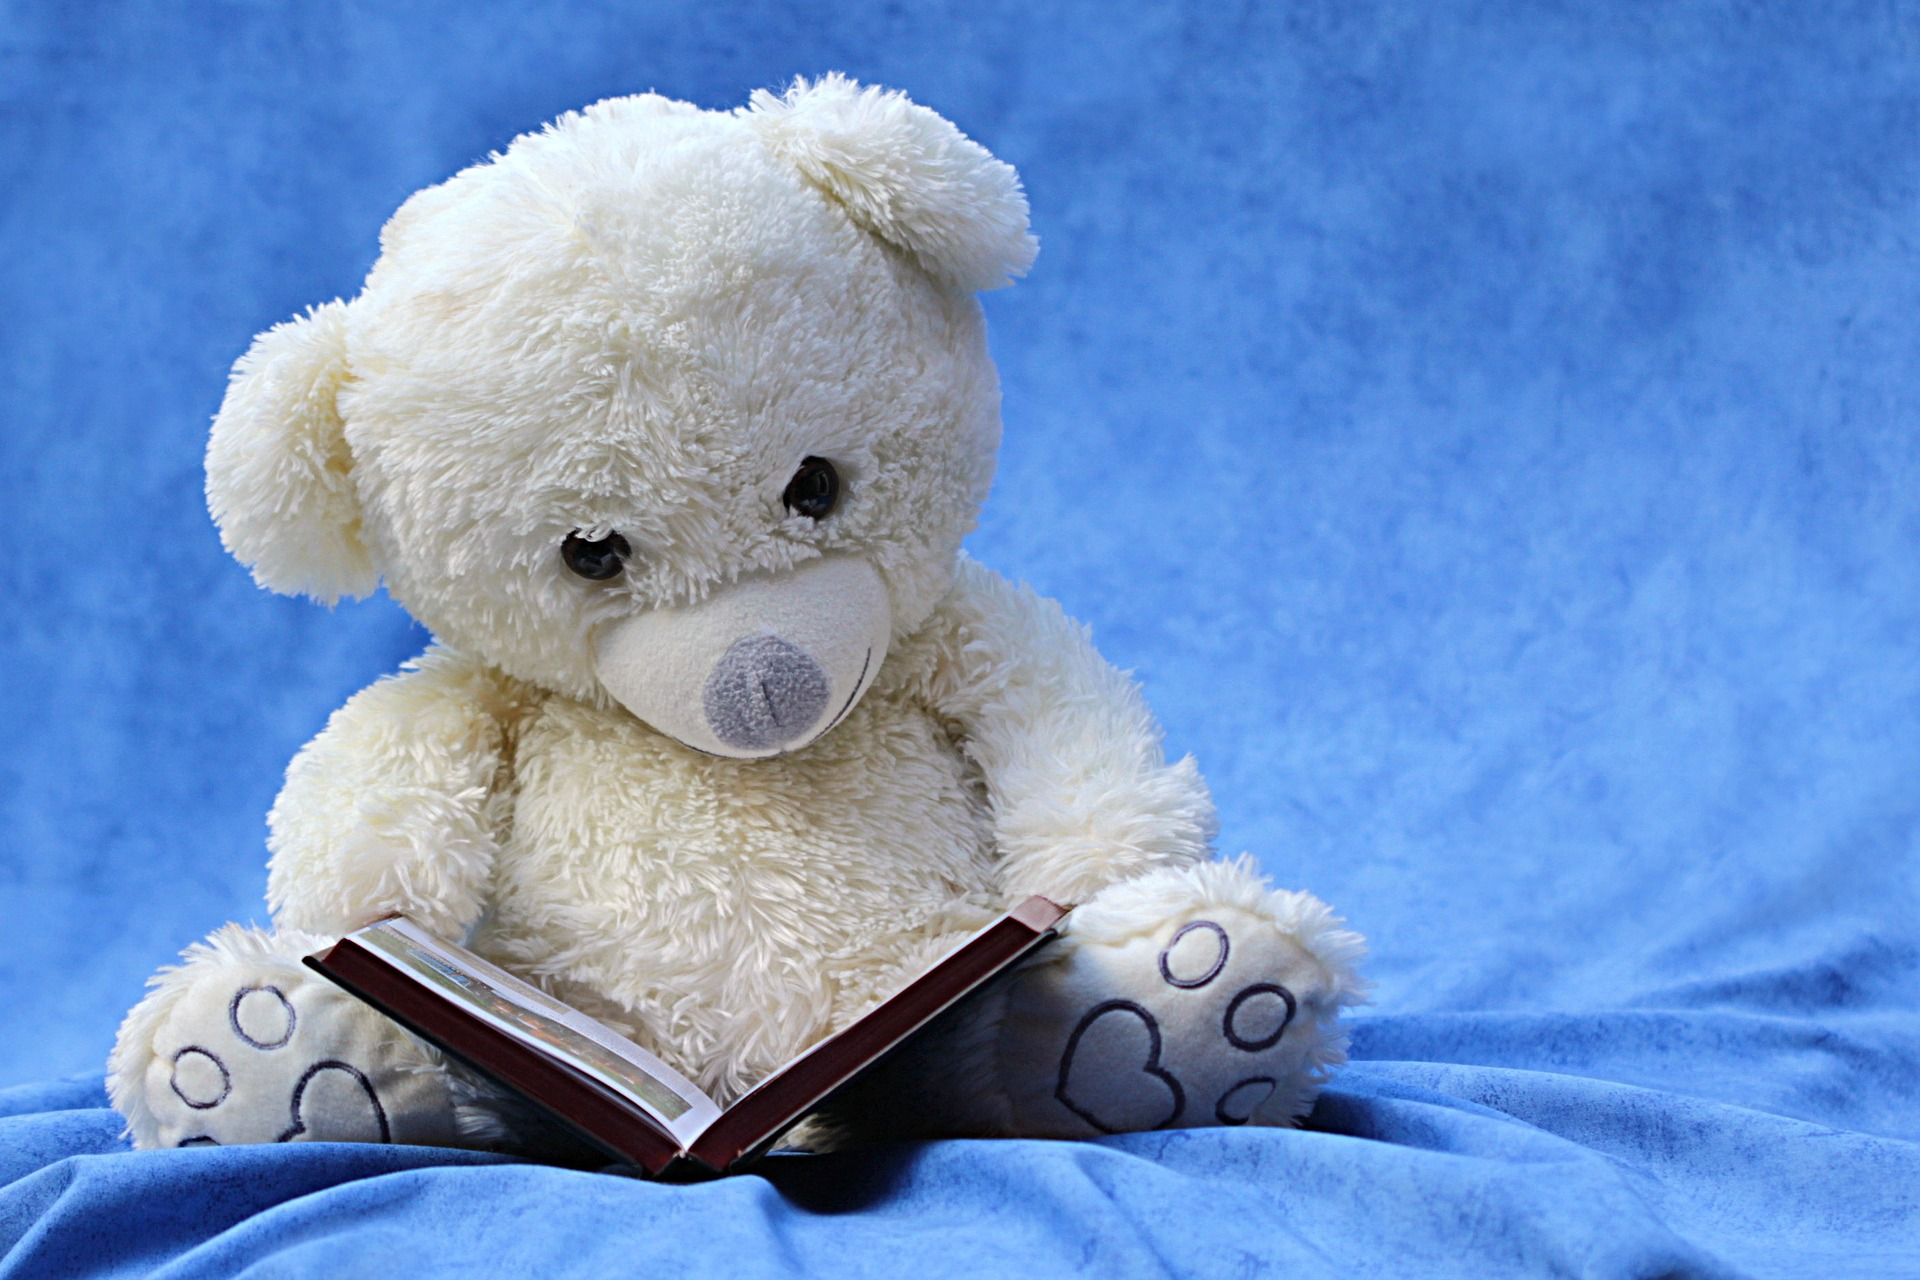 even stuffed animals love to learn